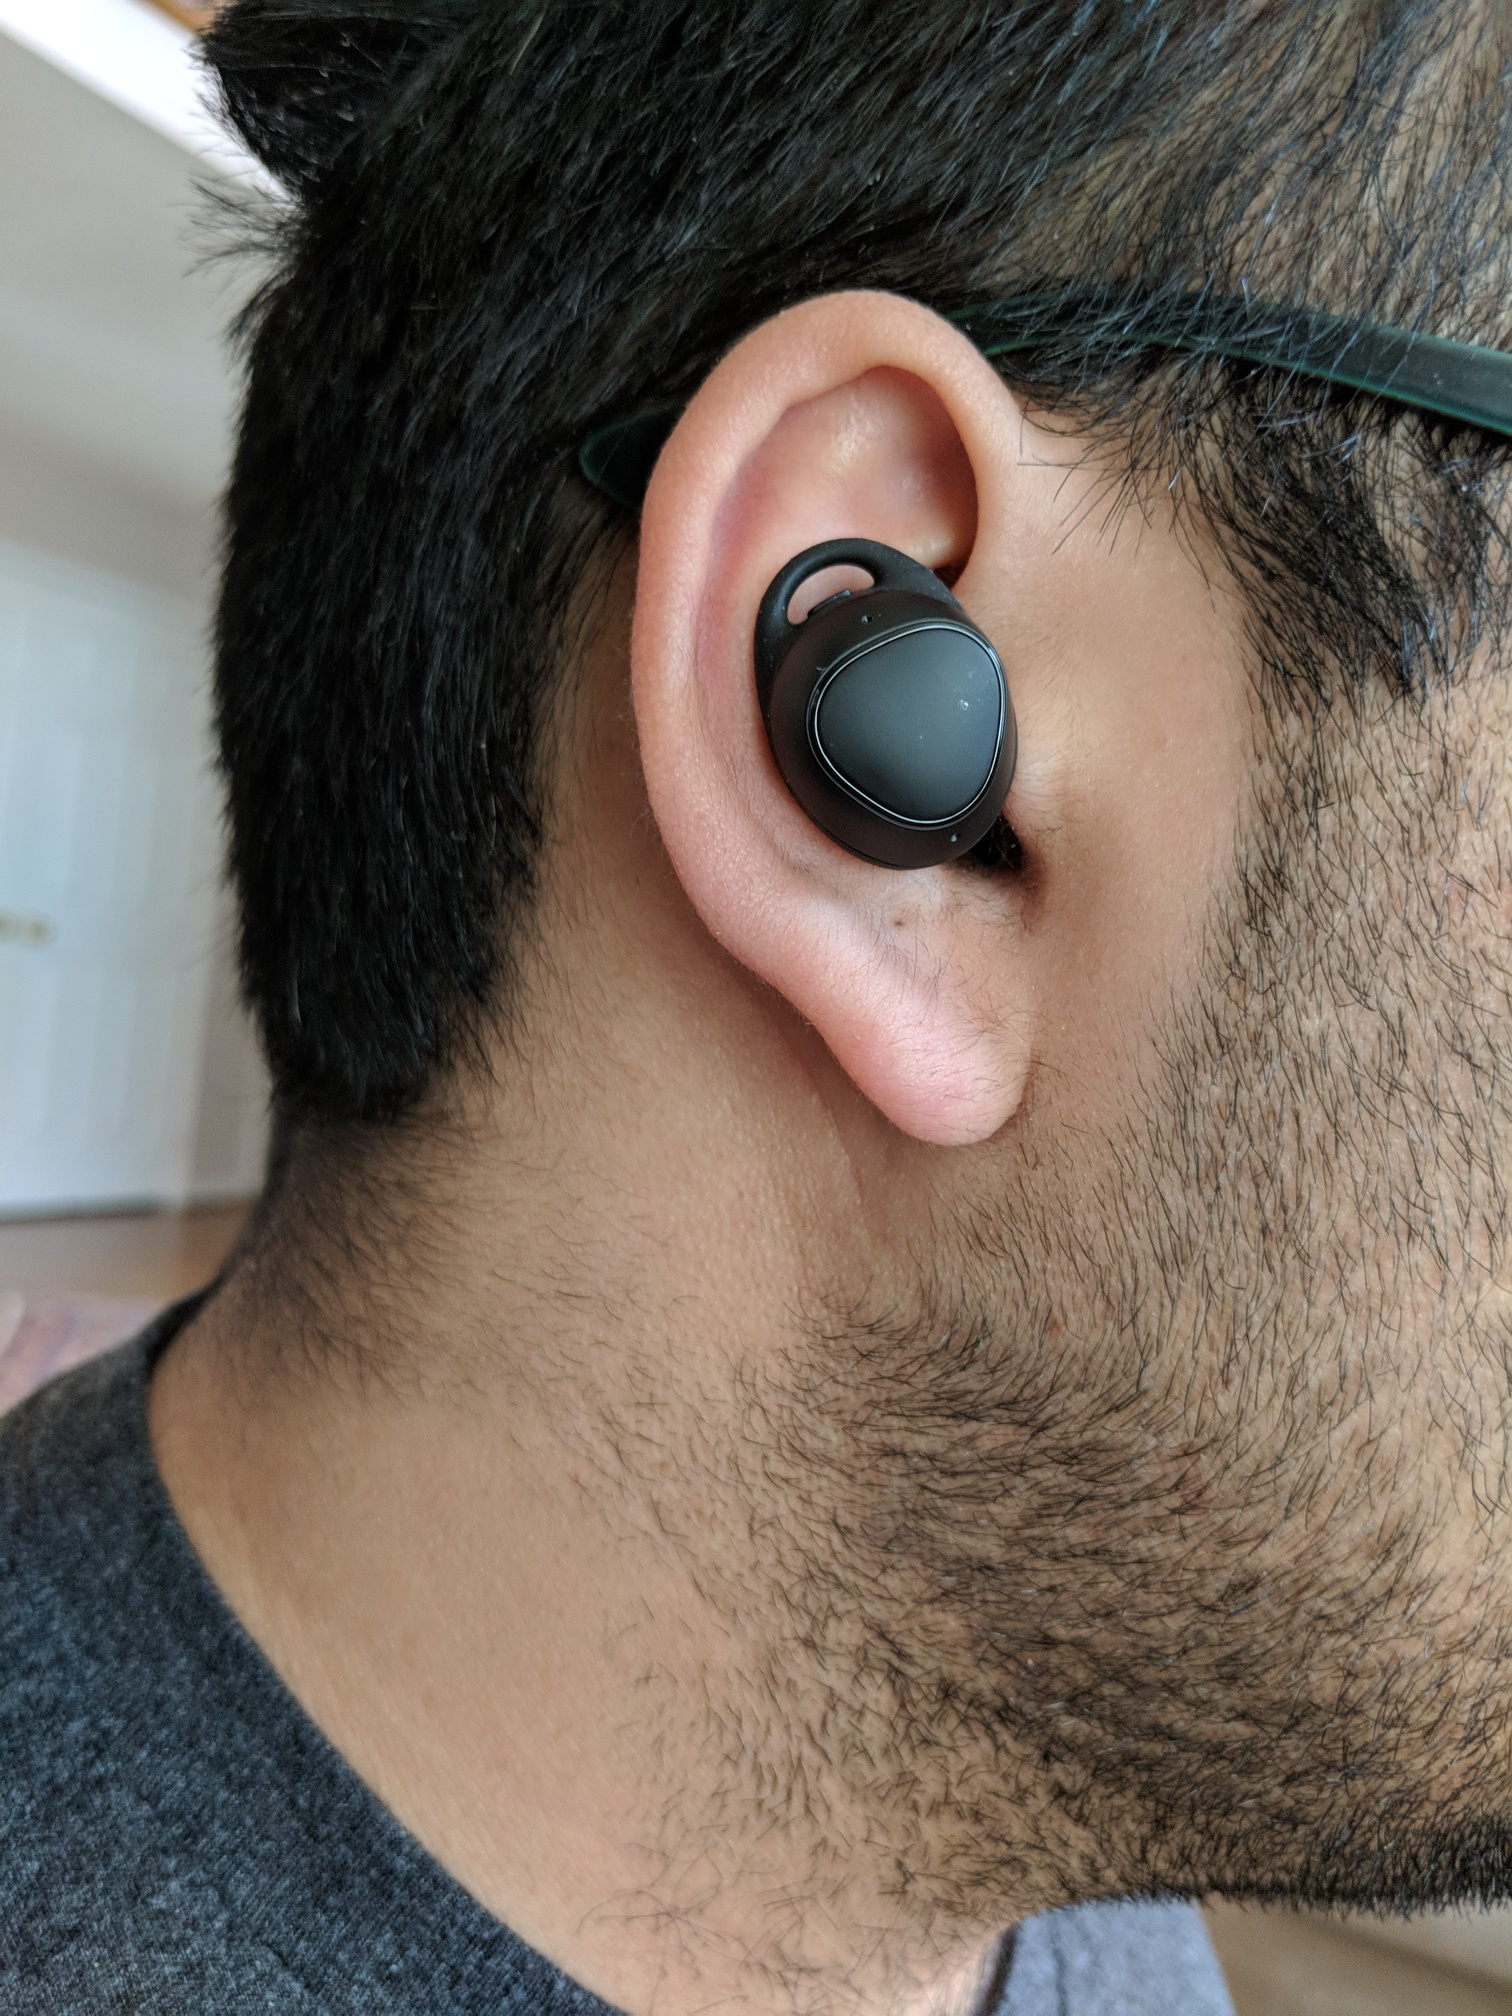 d4c531a4ab1 For the most part, the Gear IconX (2018) stayed in my ears but occasionally  they would start to slip out as I would walk with them in my ears.